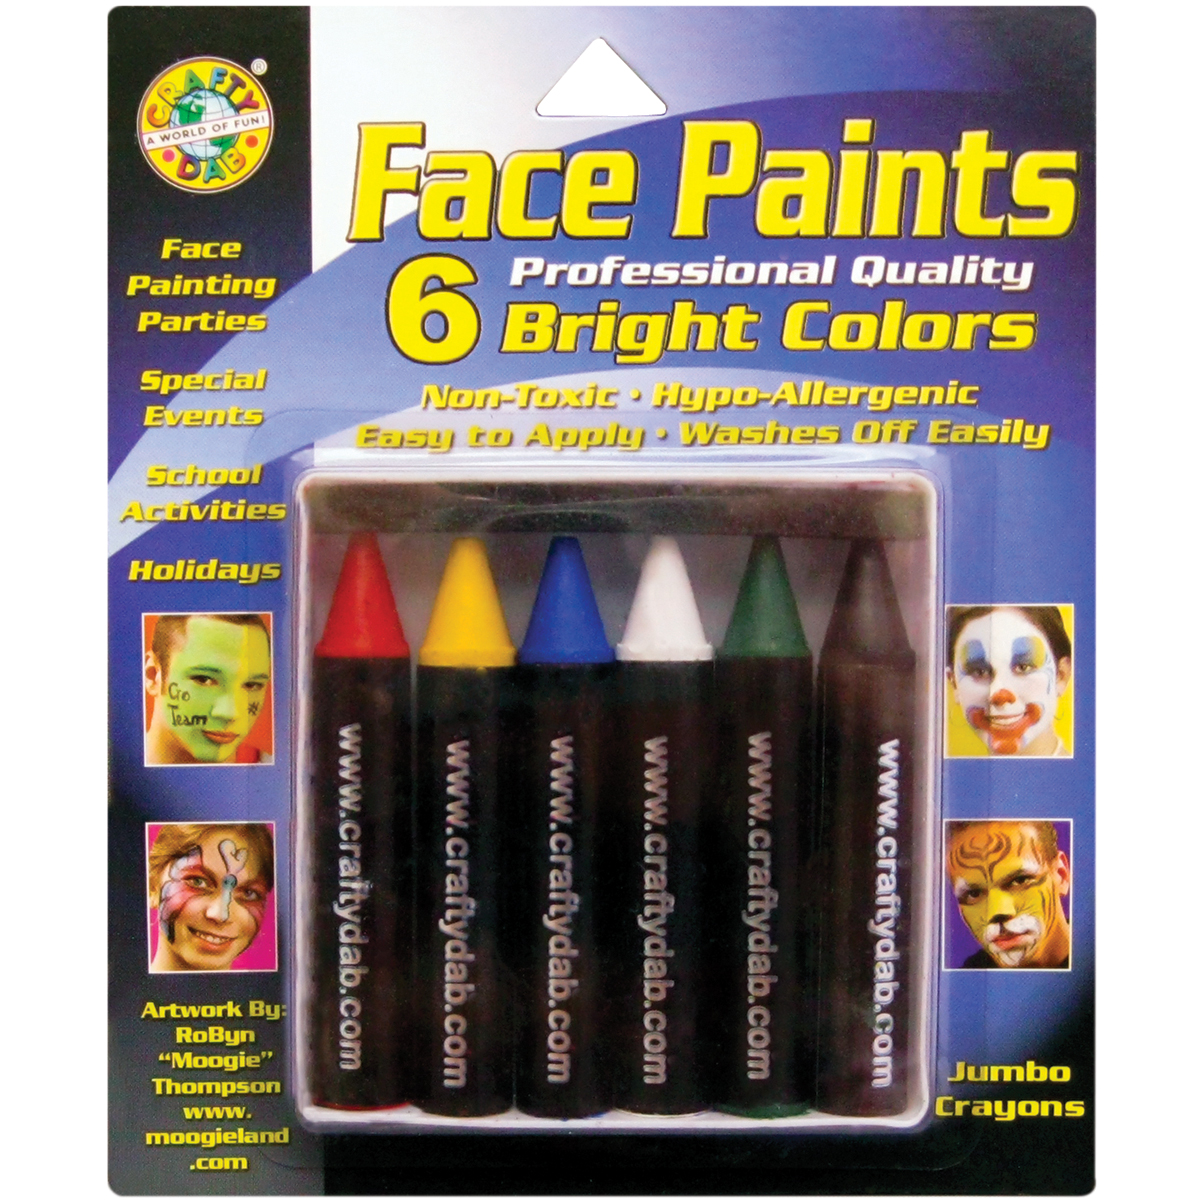 Bright - Jumbo Face Paints